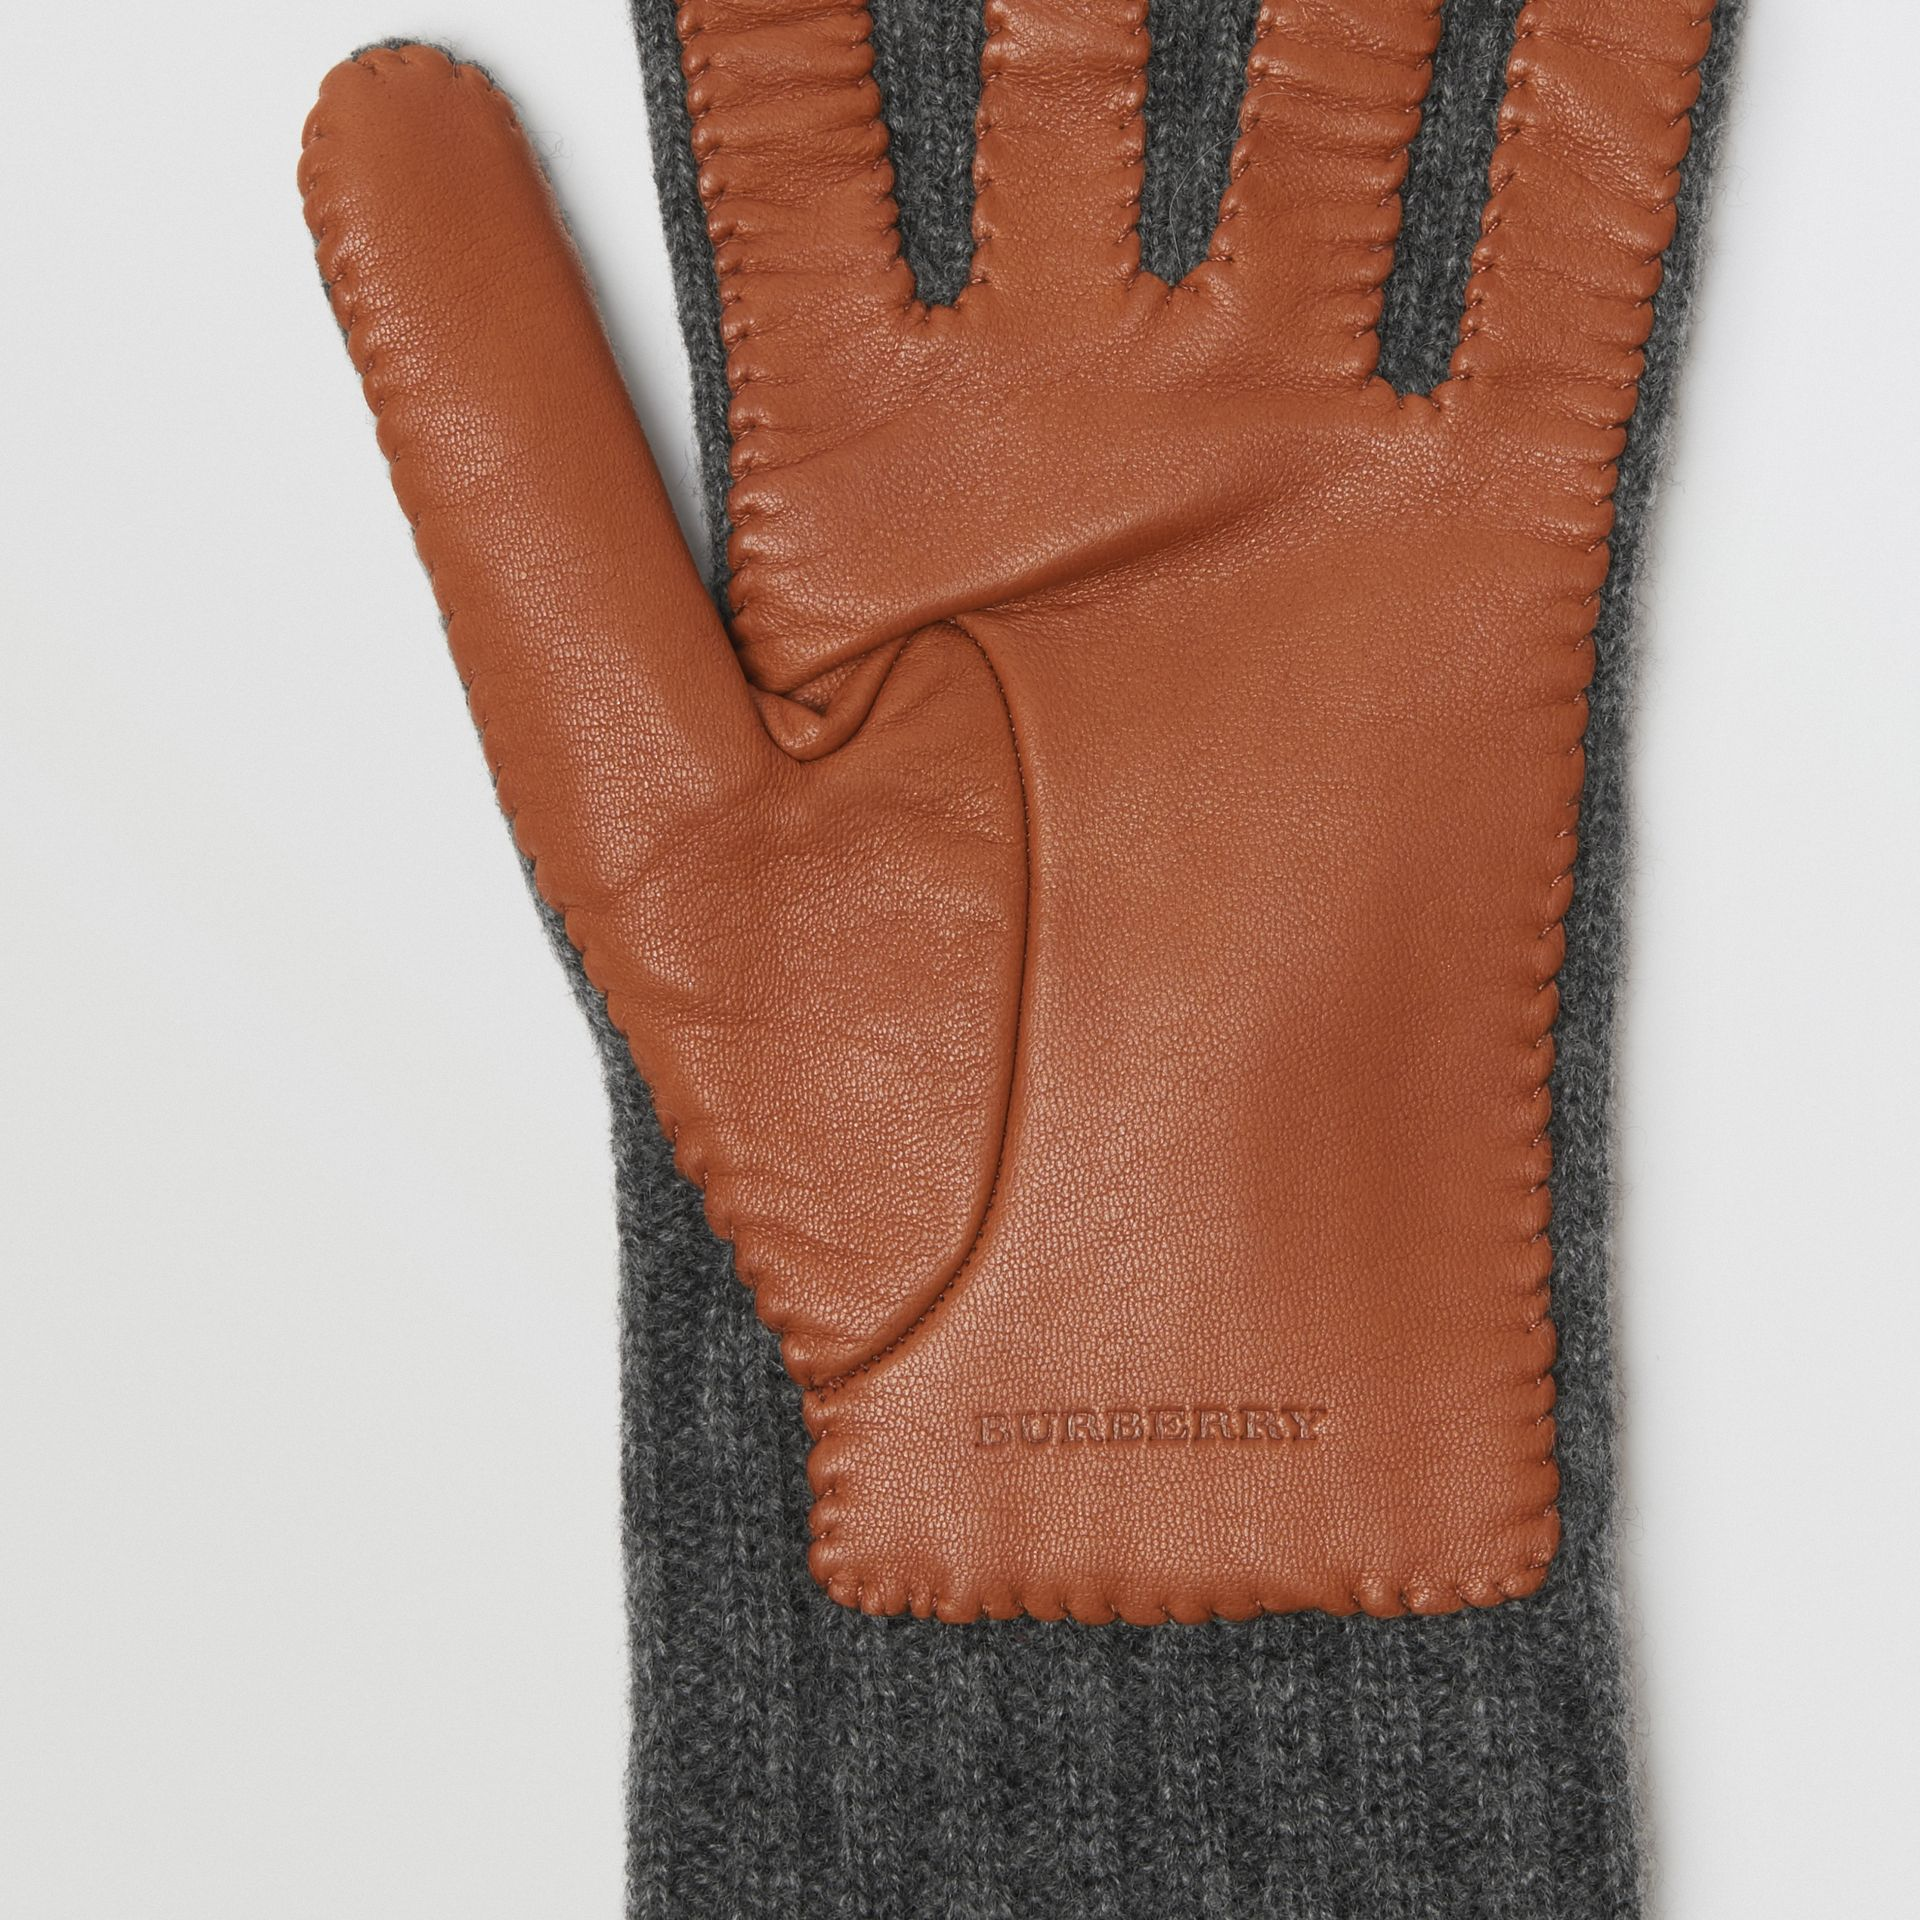 Cashmere and Lambskin Gloves in Tan/charcoal - Women | Burberry Singapore - gallery image 1